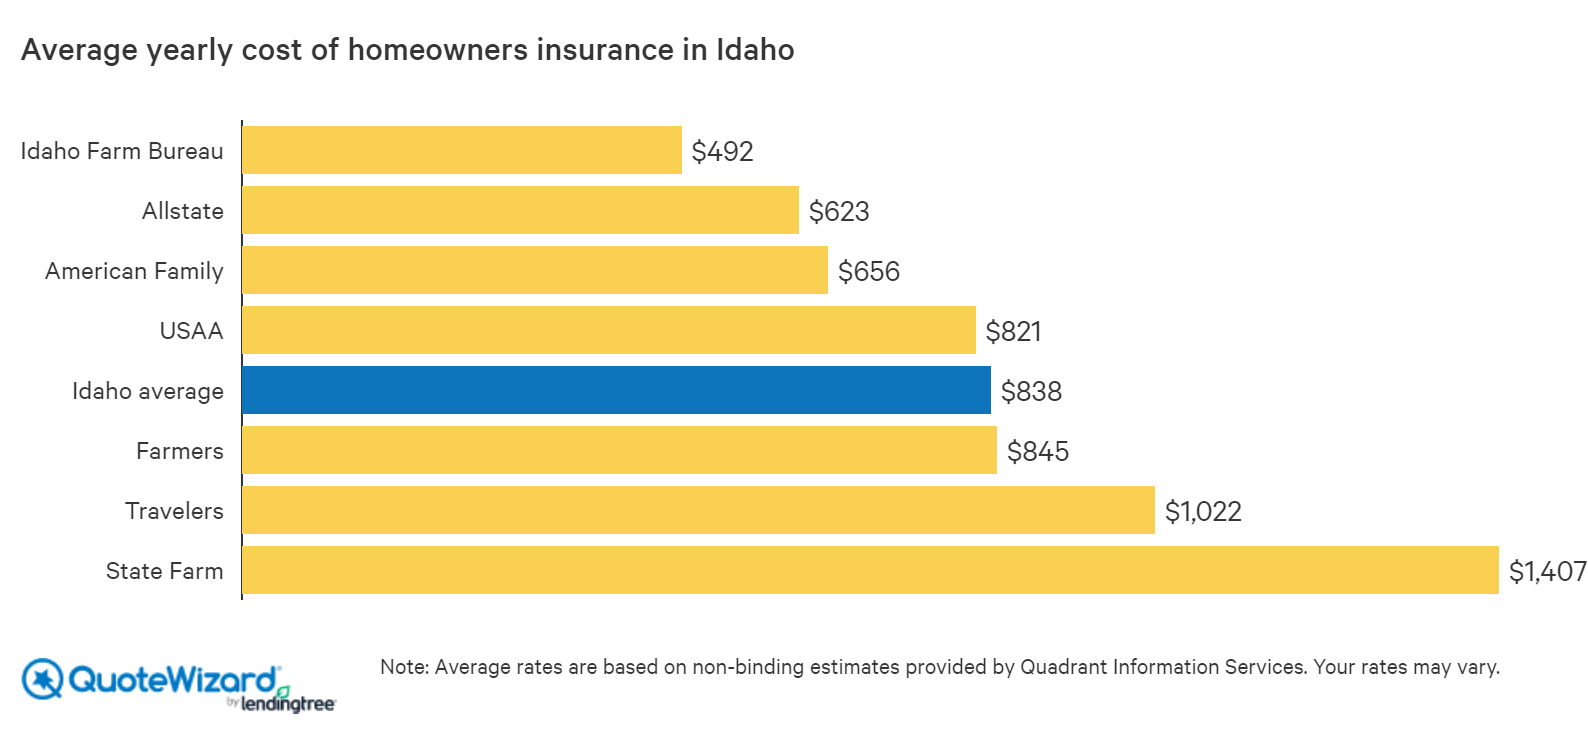 average cost of homeowners insurance in idaho by company